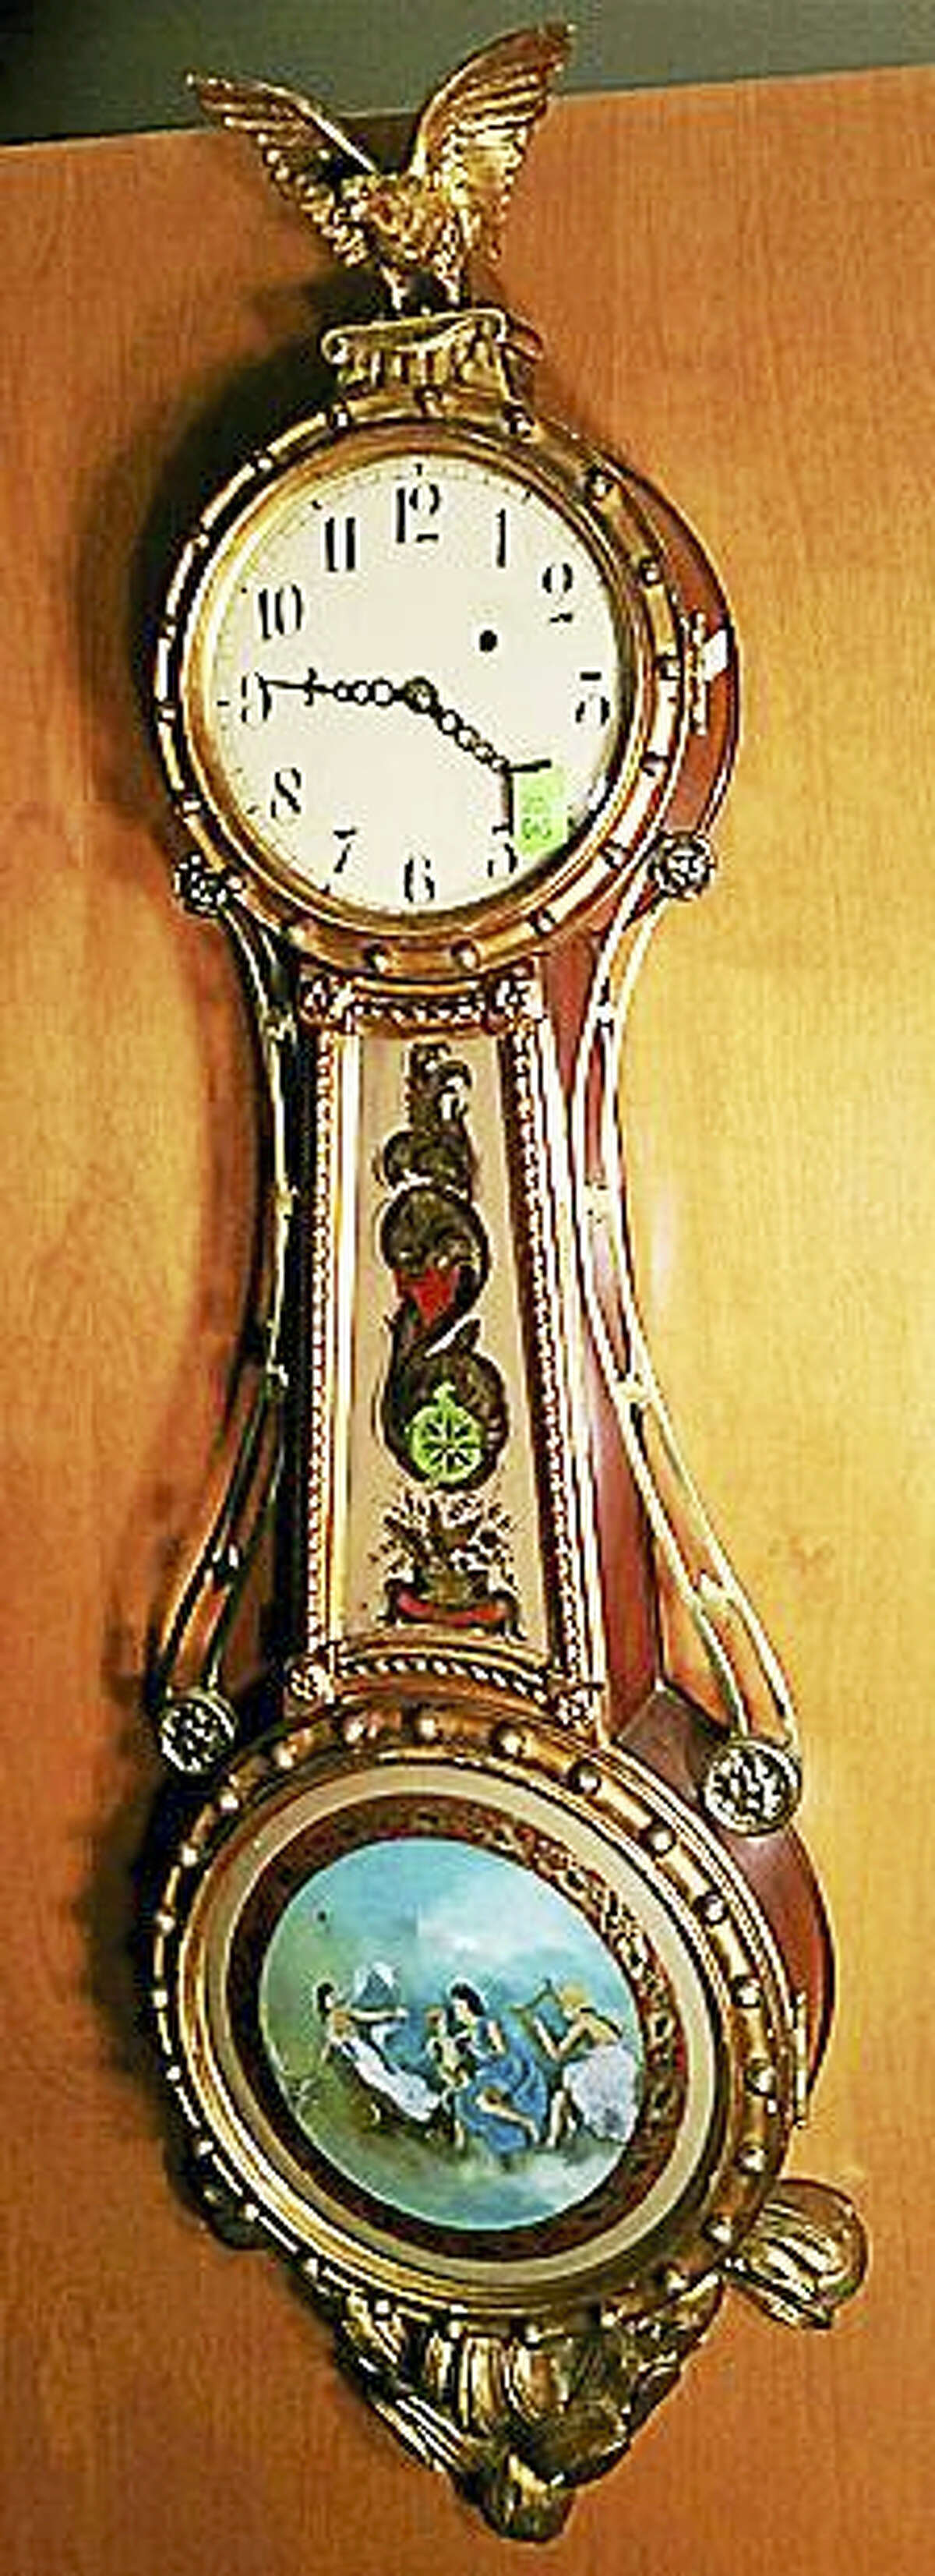 Contributed photos Clocks from makers around Connecticut will be featured at Tim's Inc Auctions on Sunday, Oct. 23.